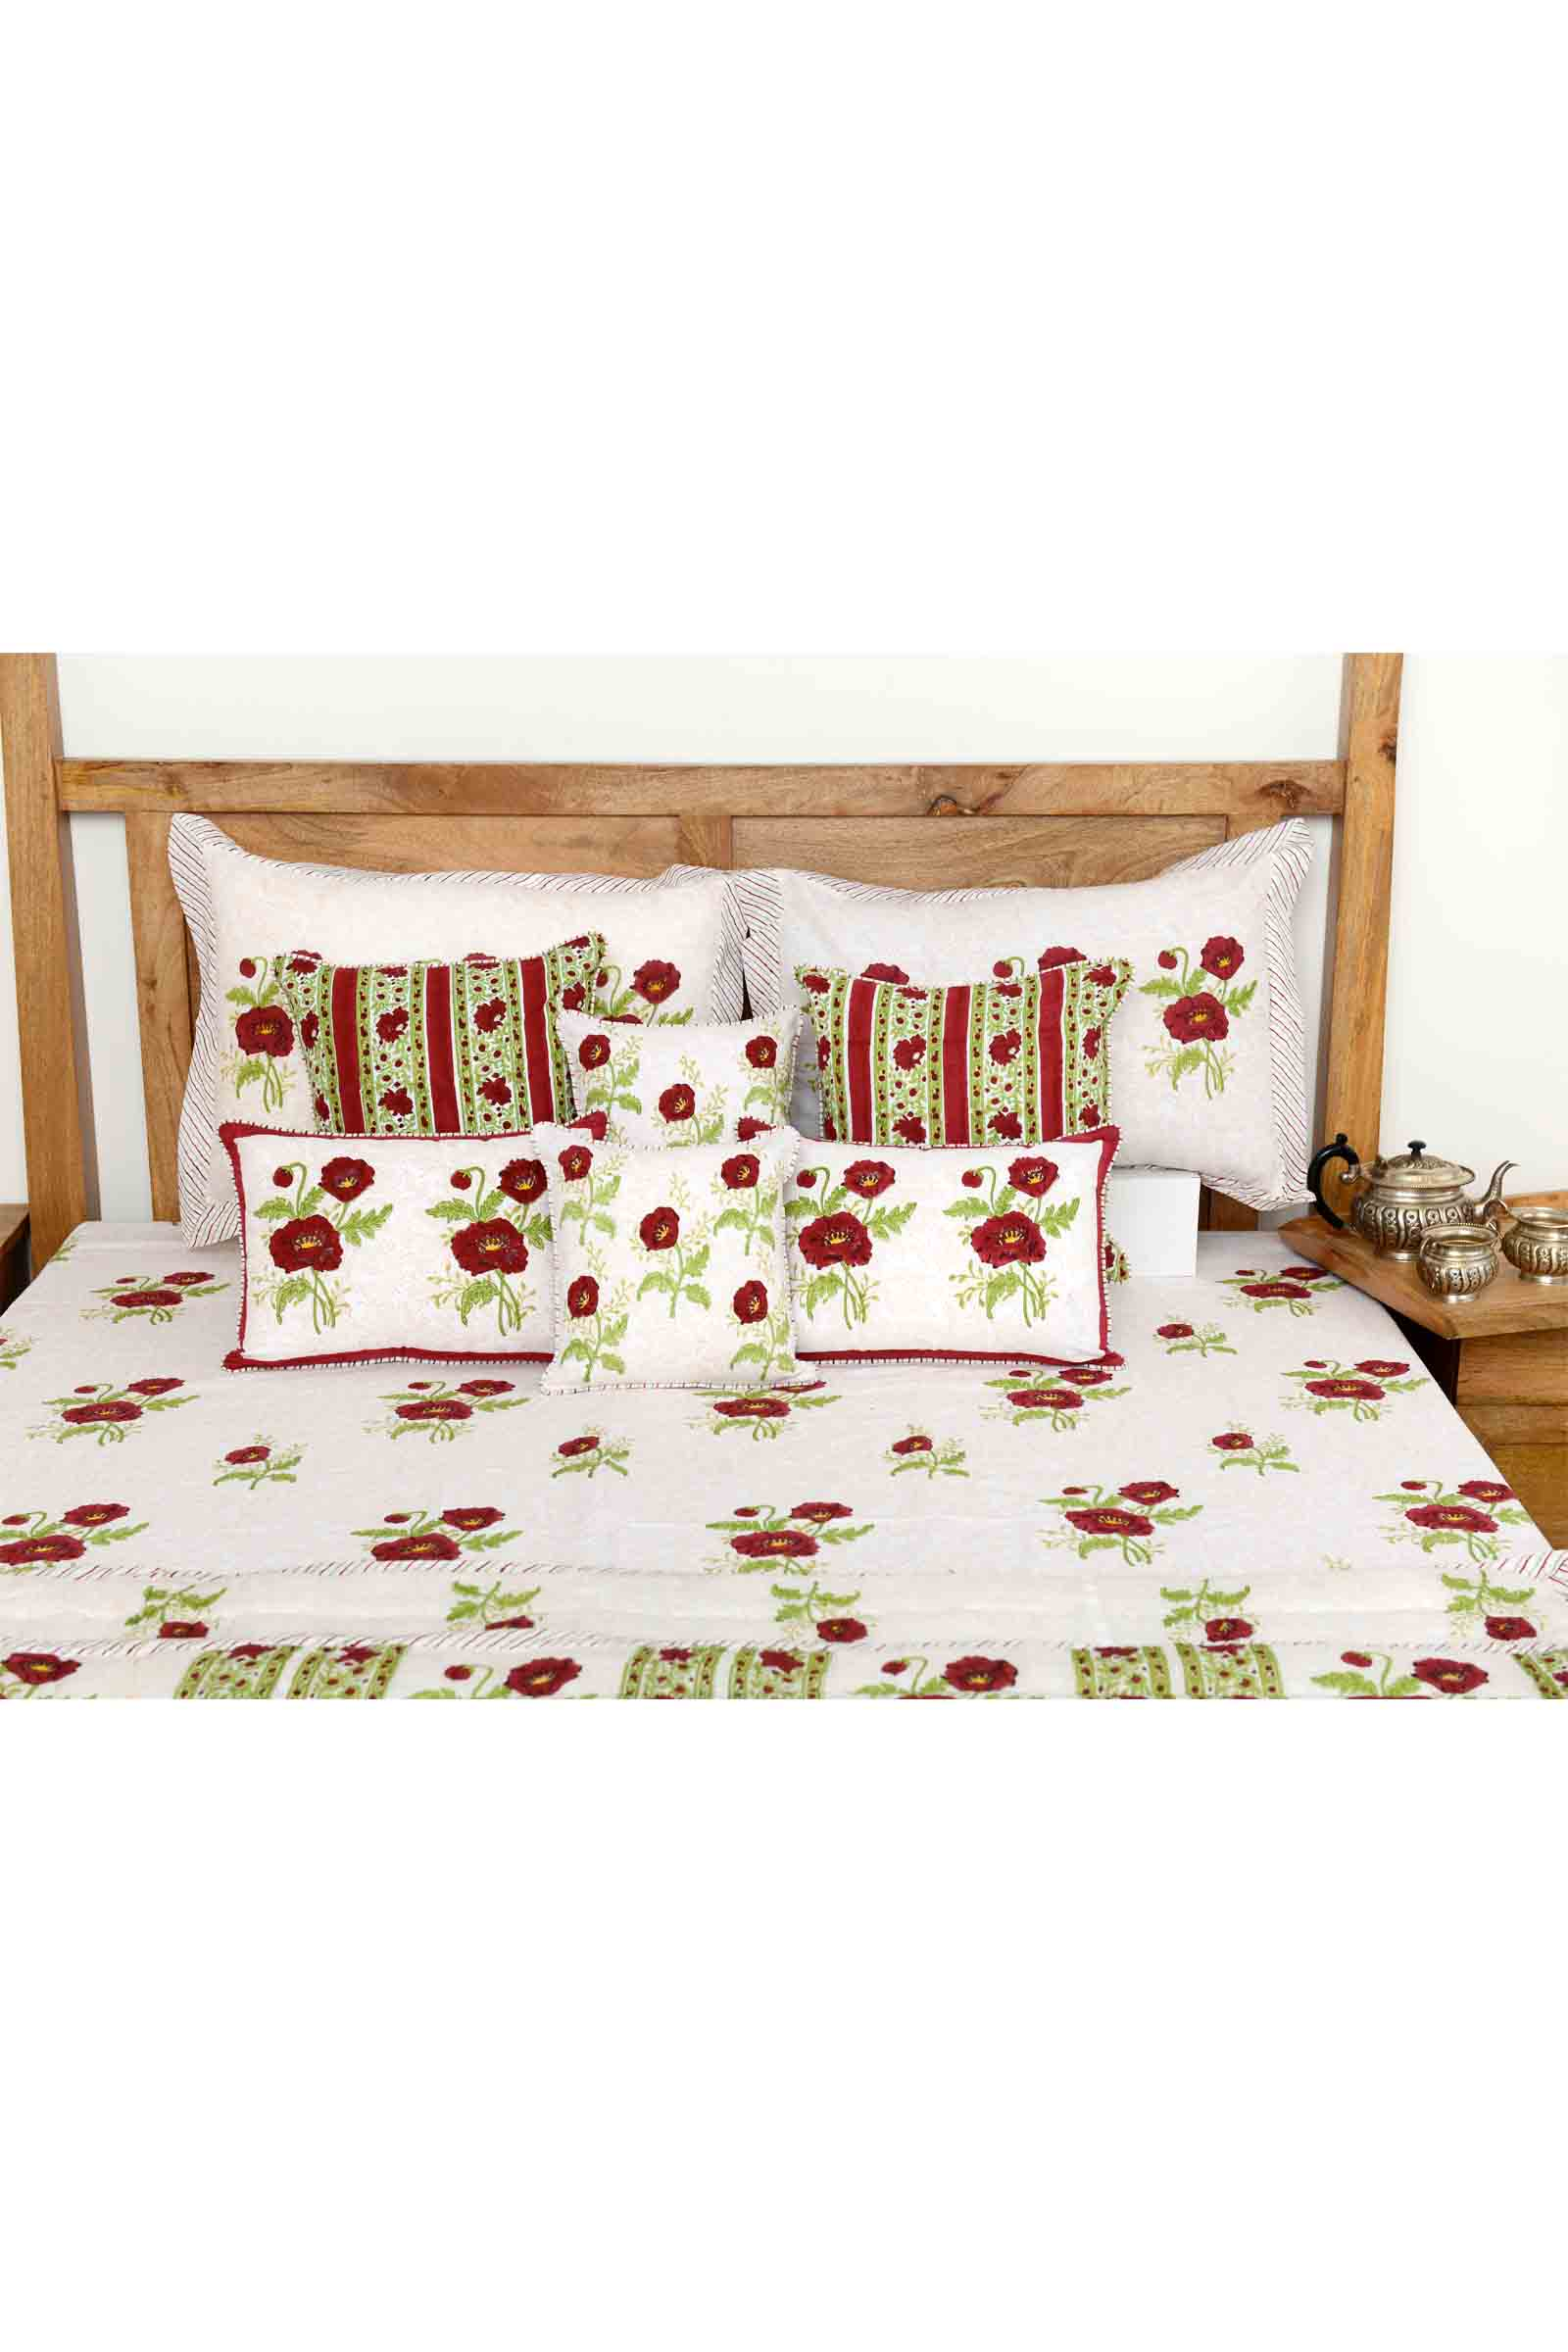 Red Poppies Bed Cover